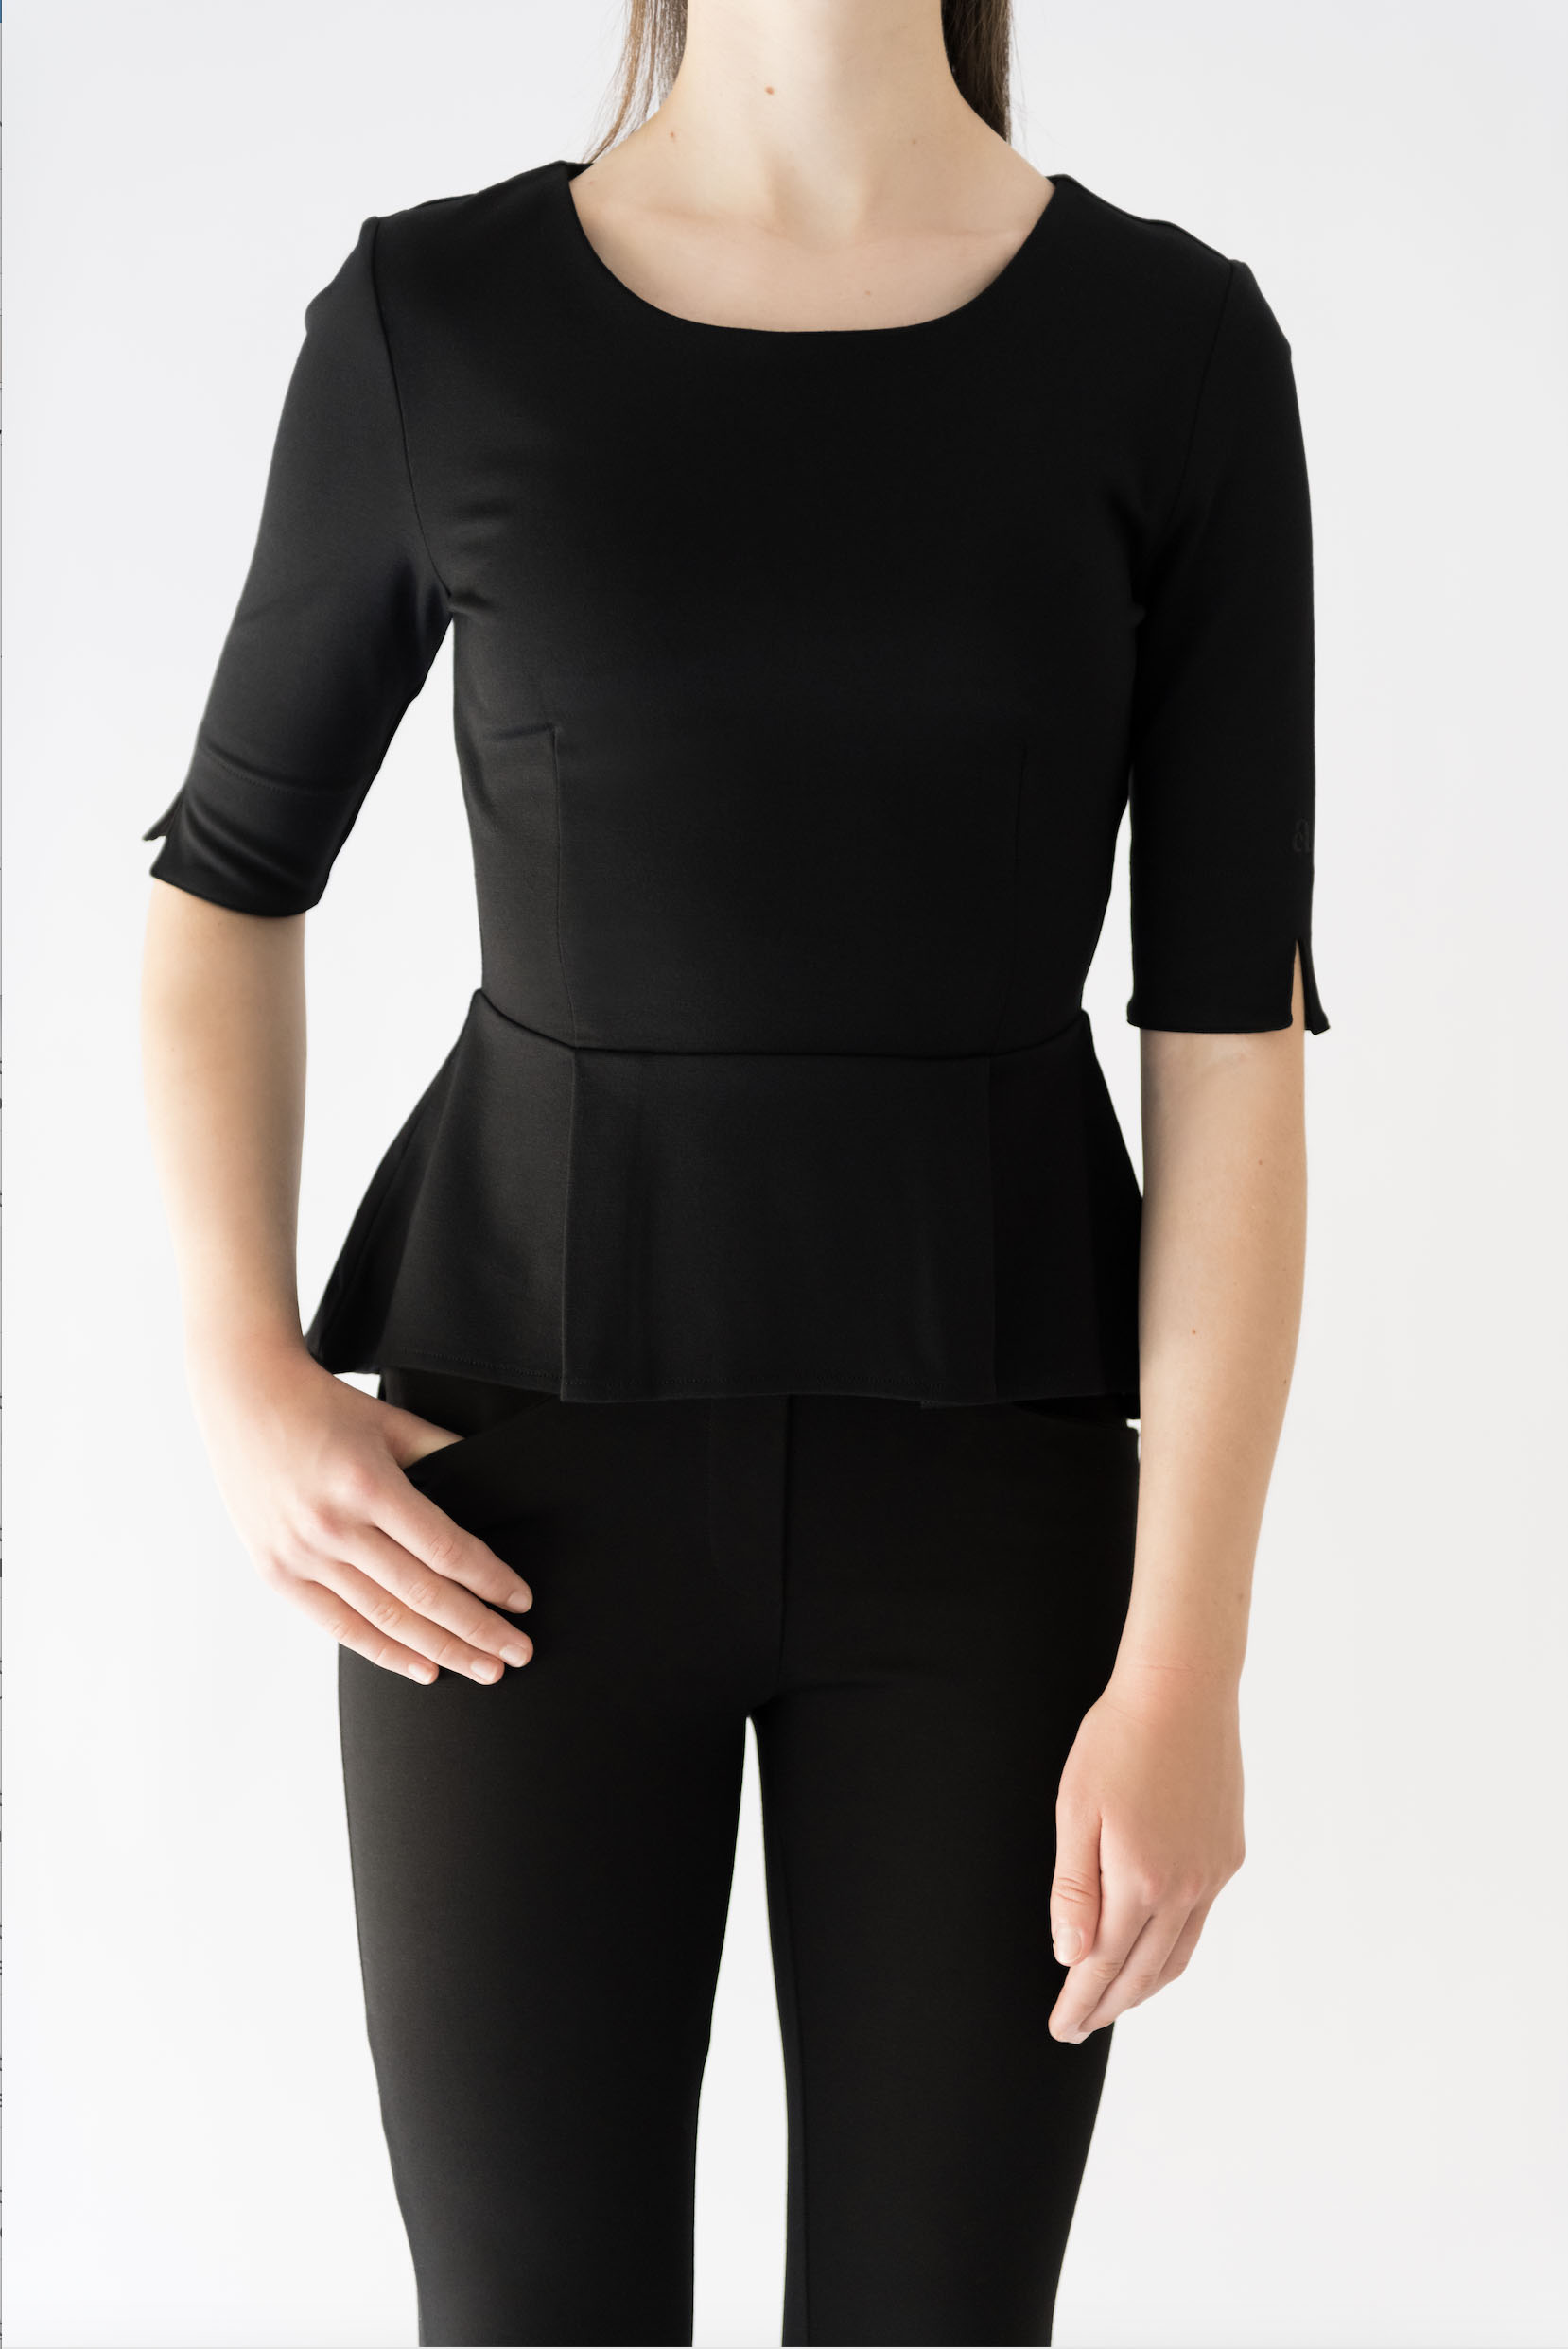 shop for genuine select for latest search for official Black Peplum Top